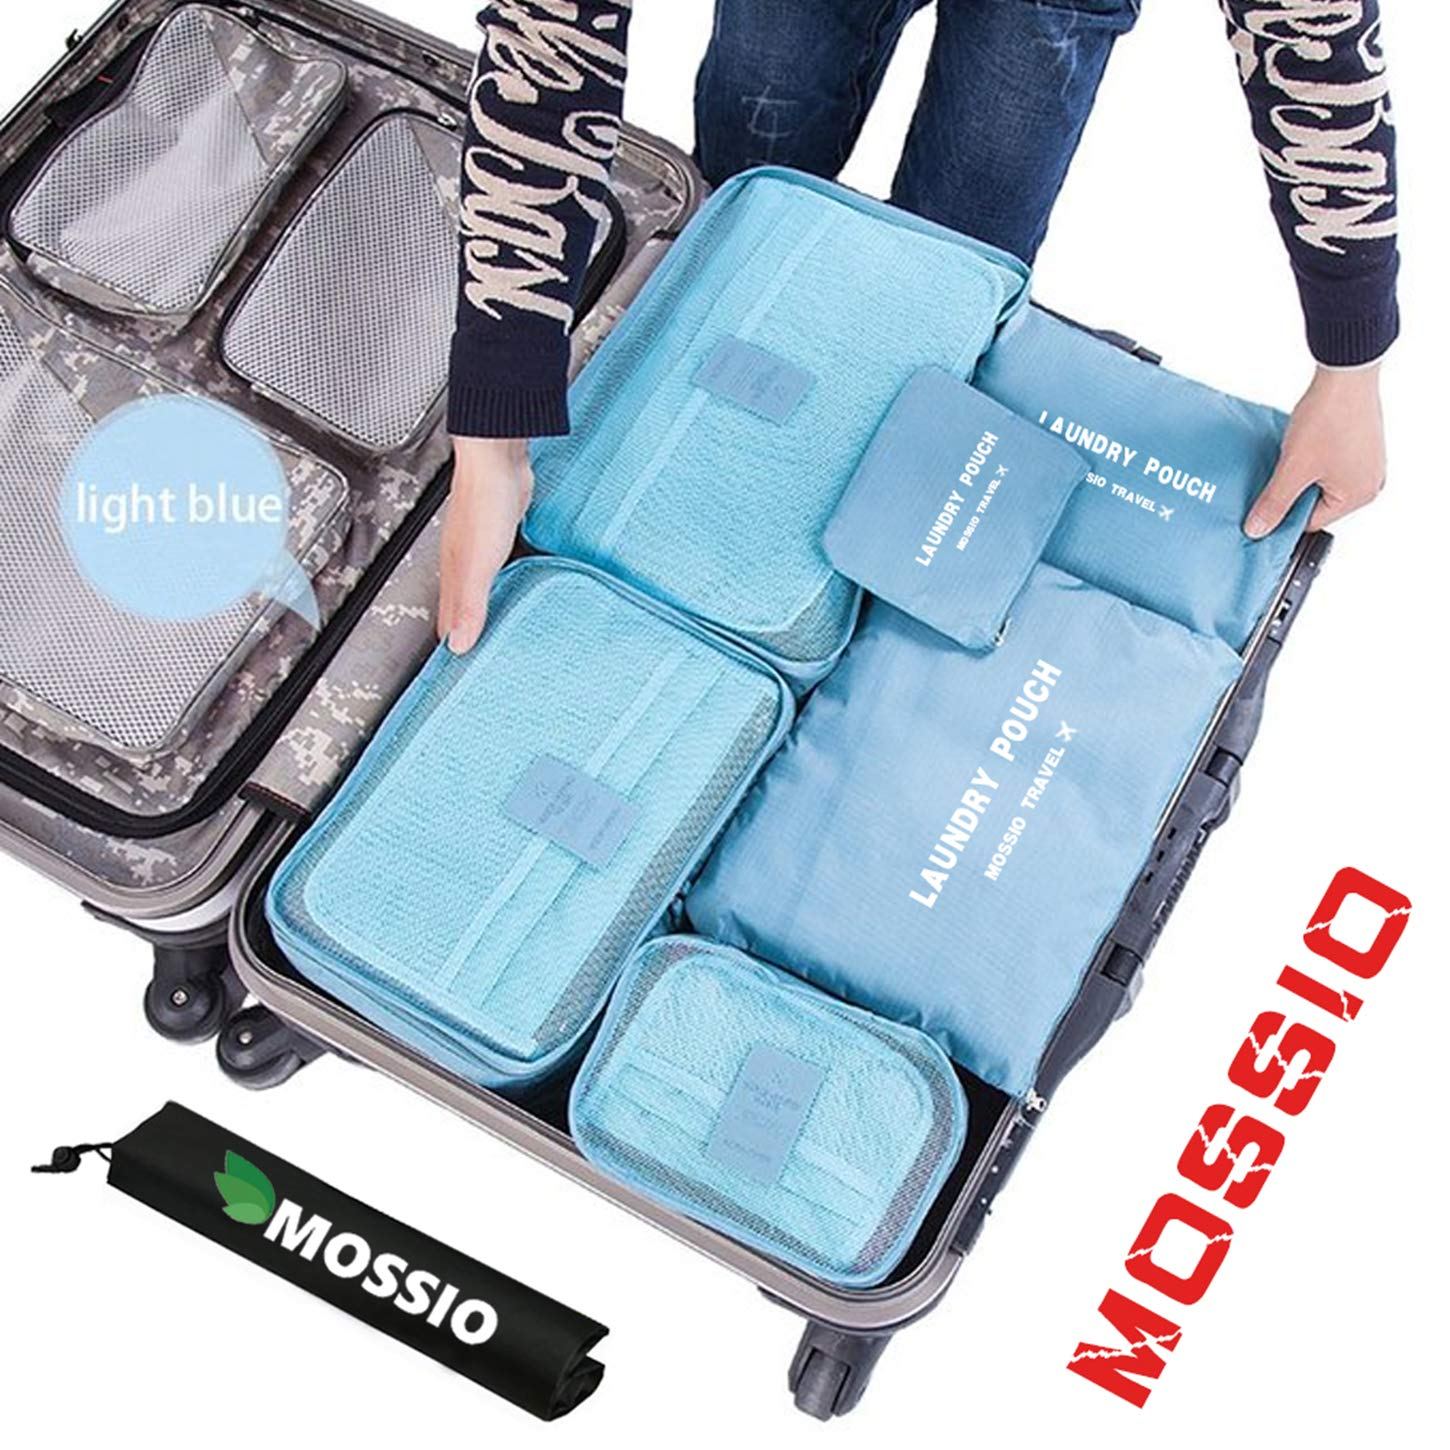 Mossio 7 Set Packing Cubes with Shoe Bag - Compression Travel Luggage Organizer Luo GuiLing PA-DBU